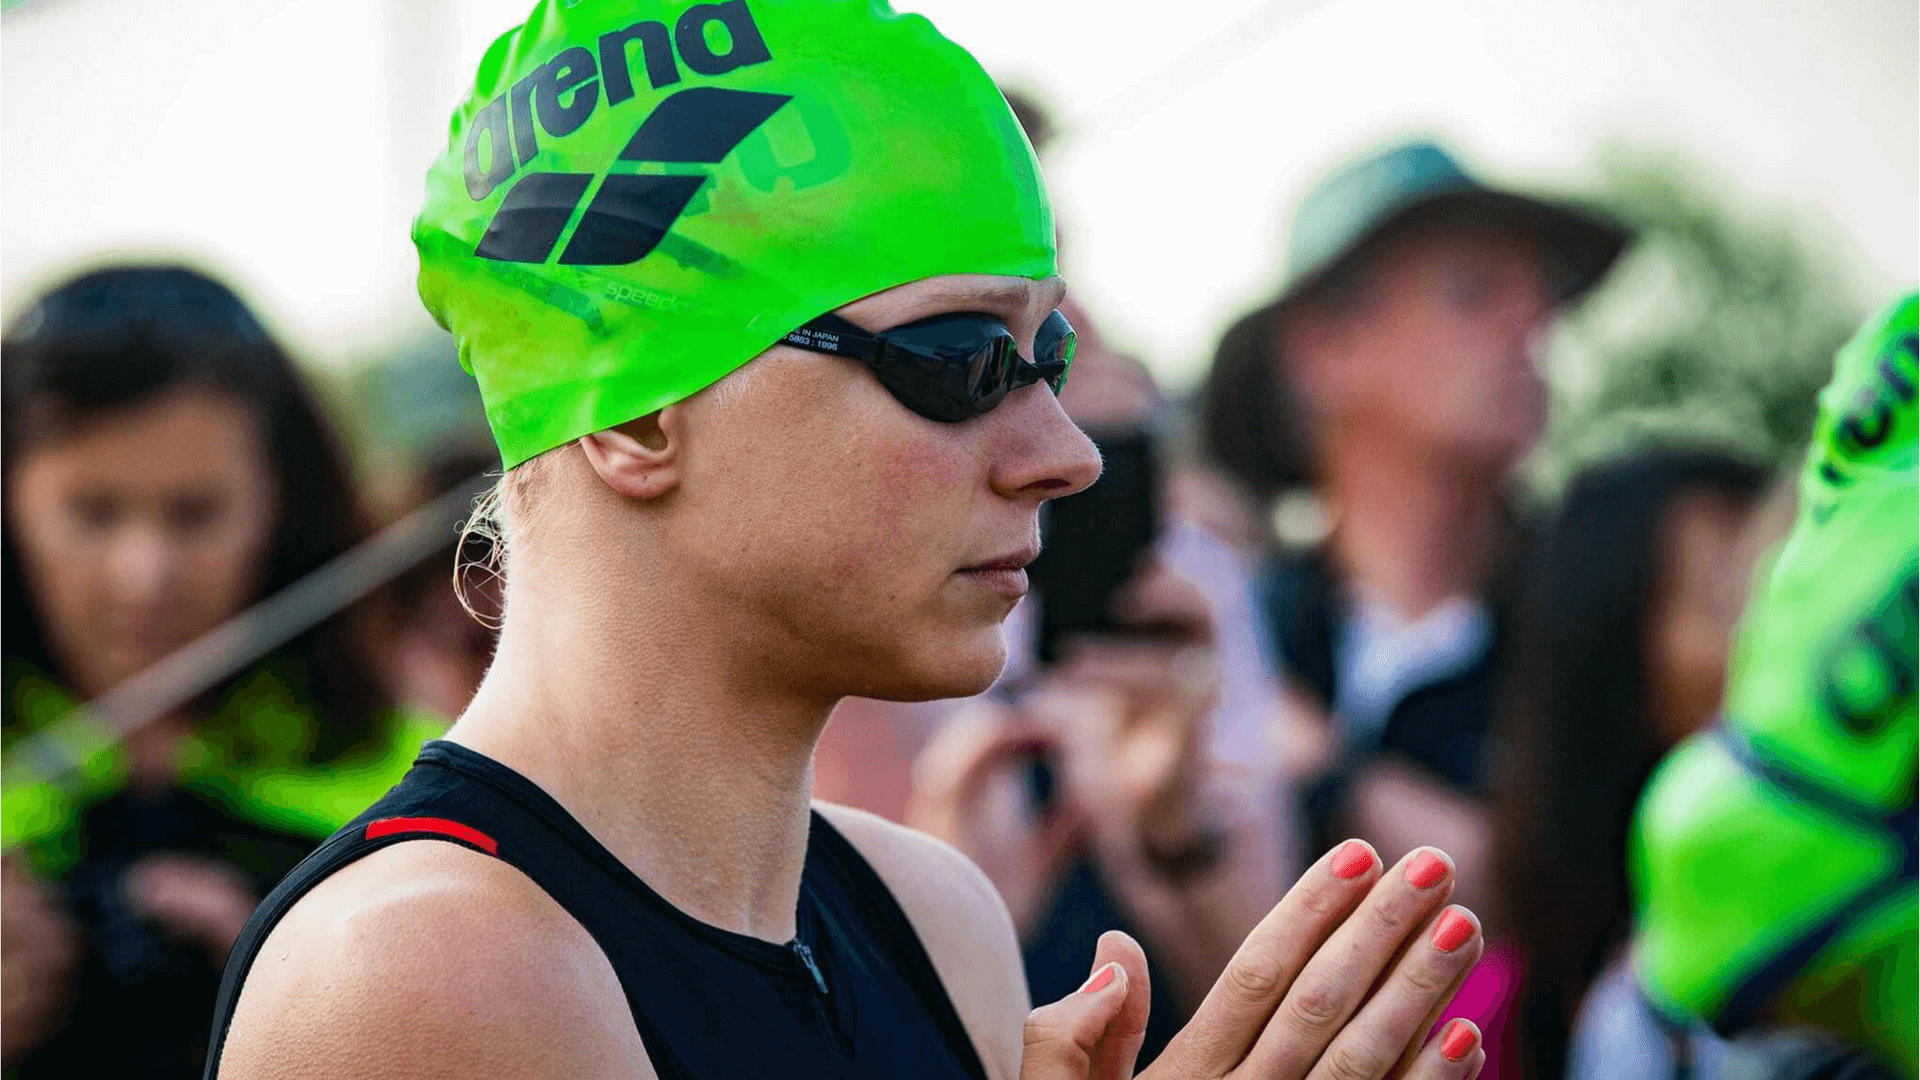 Pleuni Hooijman at the start of the Frankfurt Ironman.   Photo by Andre Kwakernaat